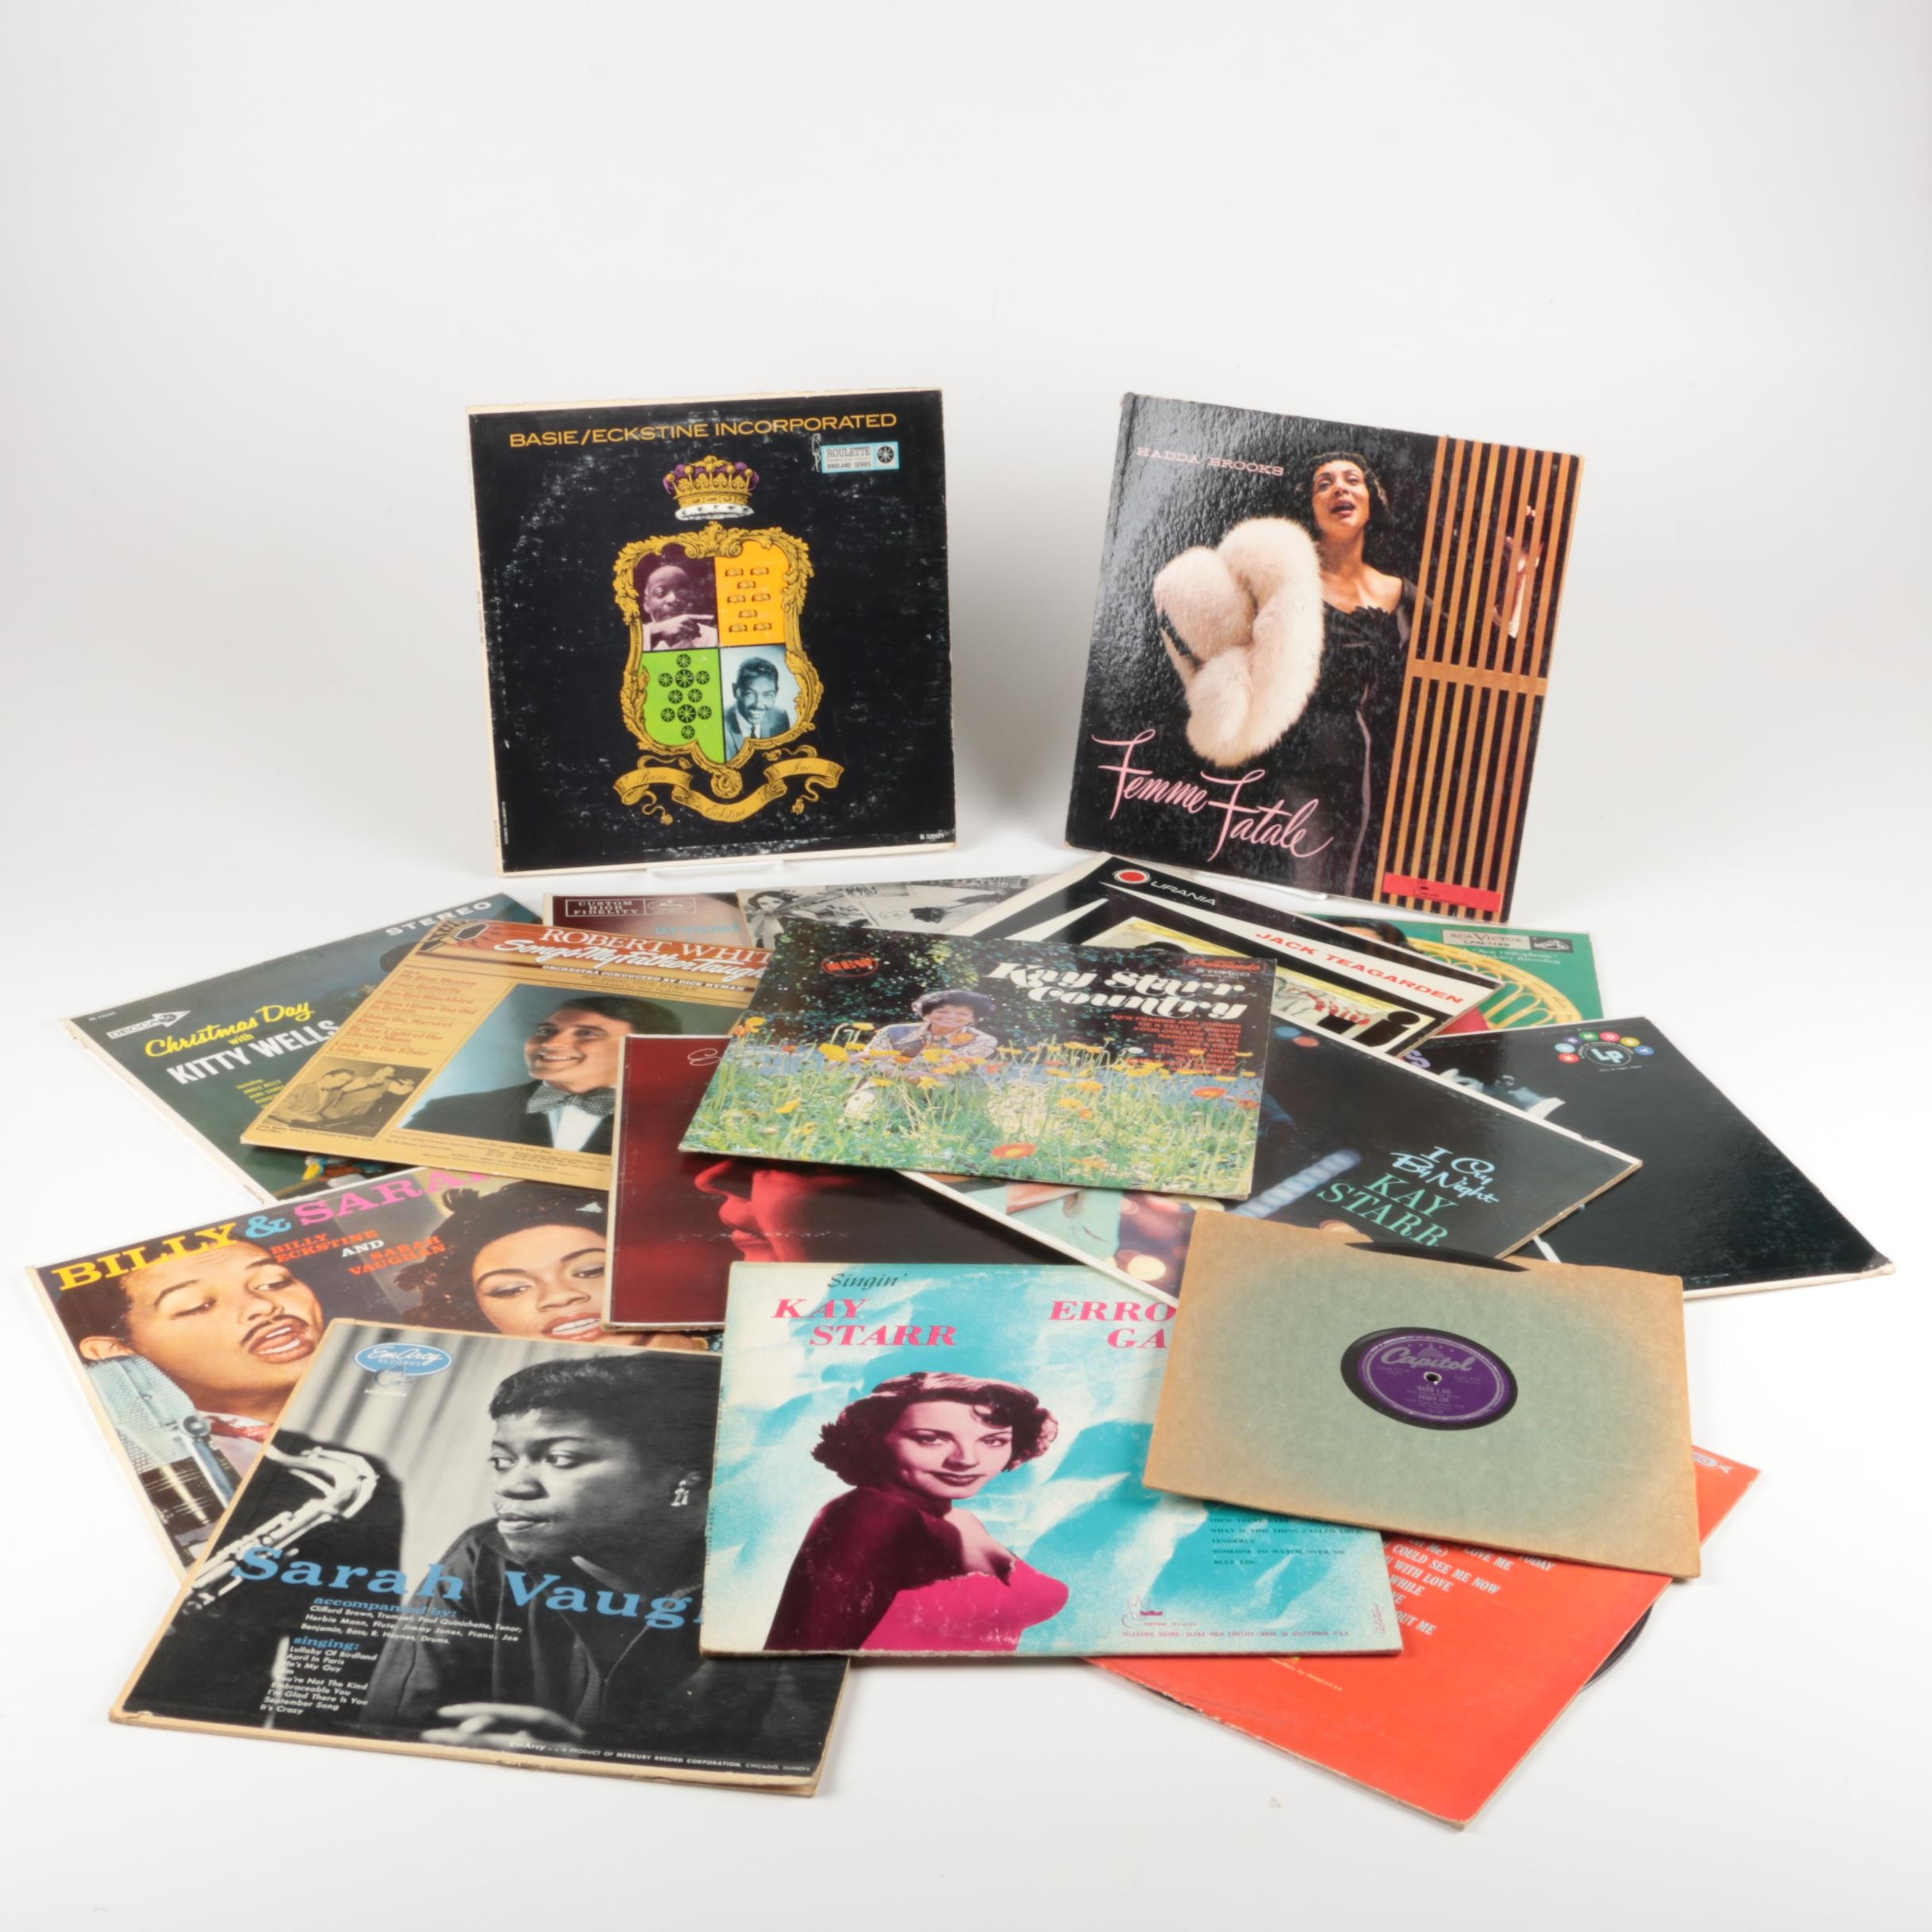 "Sarah Vaughan, ""Basie/Eckstine Incorporated"" and Other Record Albums"